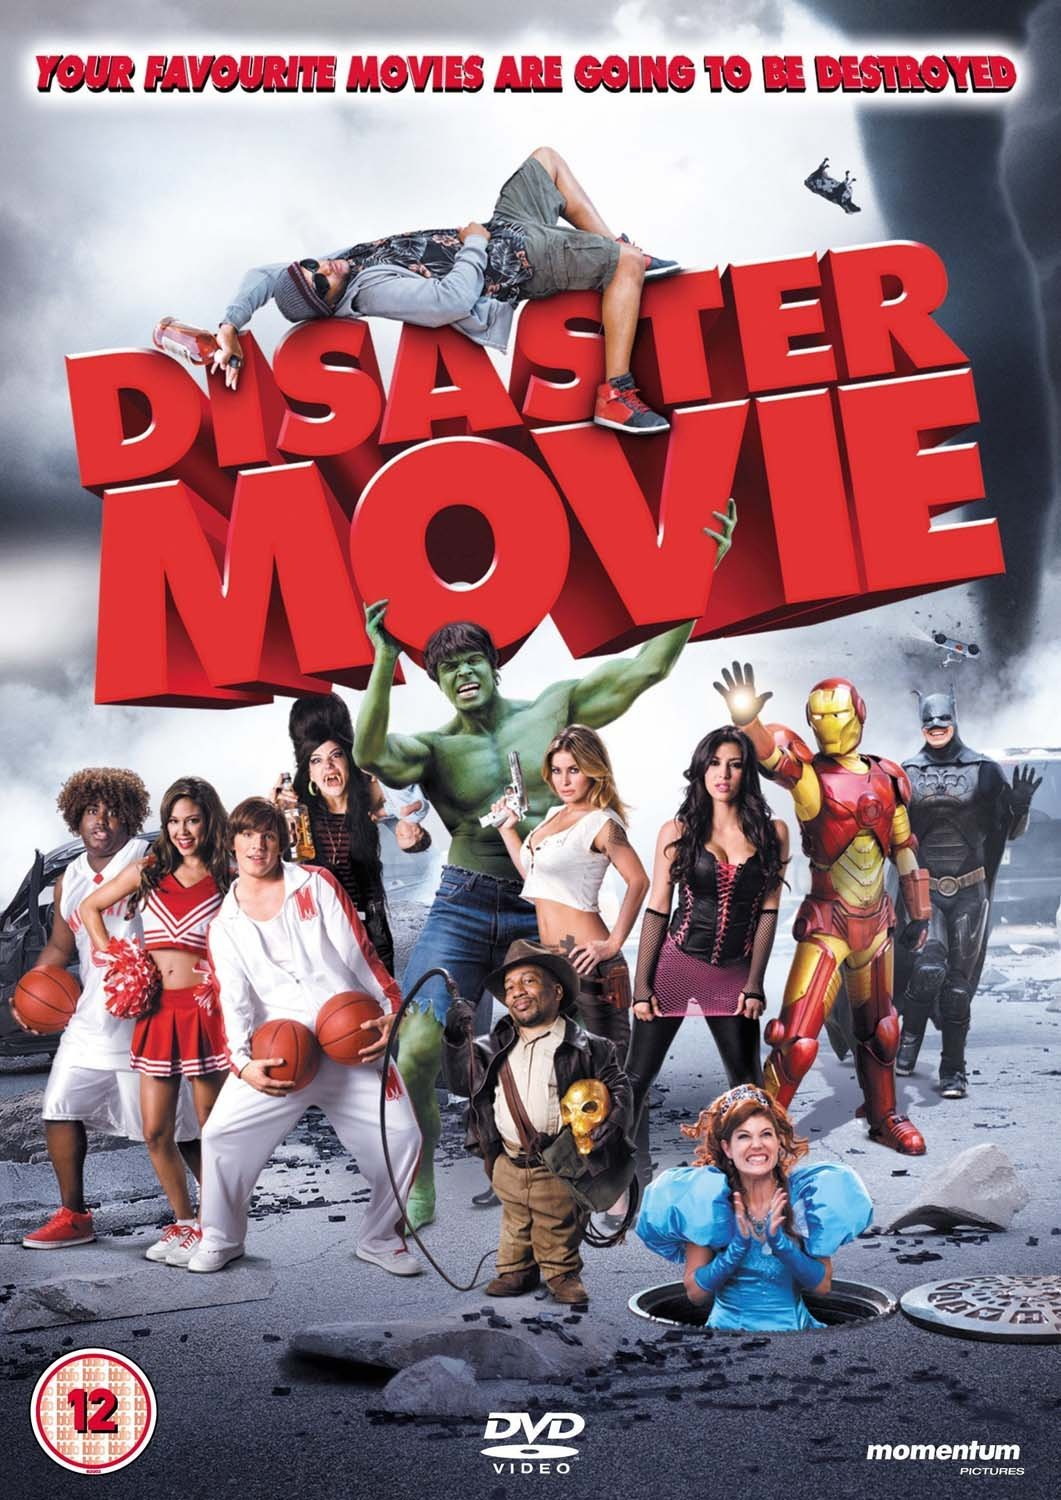 Disaster movie unrated nude, free full length sex video download